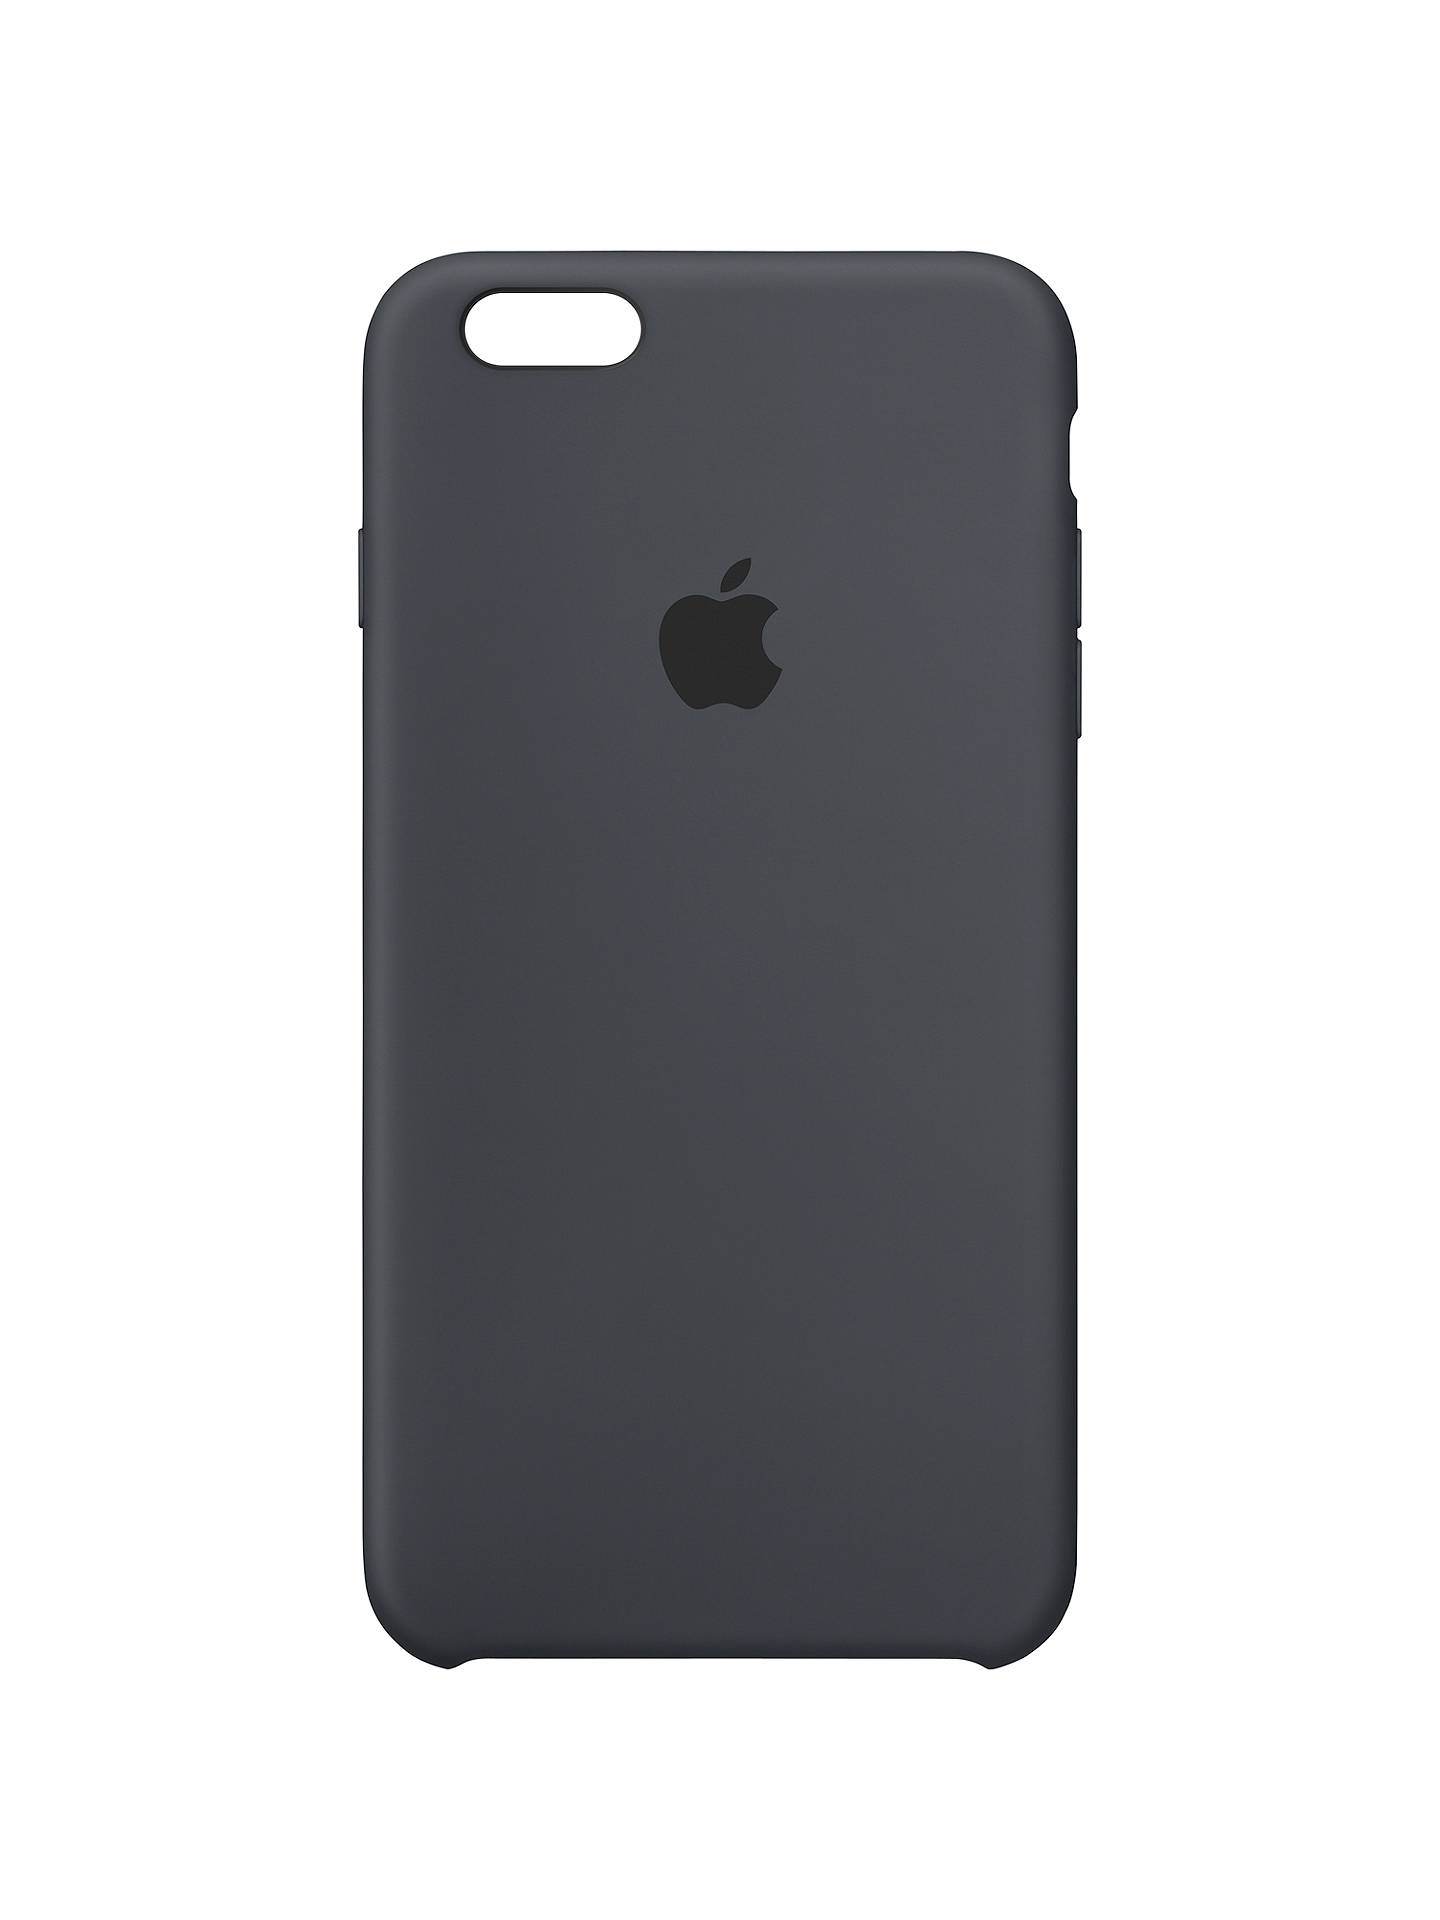 buy online 5ebf2 28b08 Apple Silicone Case for iPhone 6s Plus, Charcoal Grey